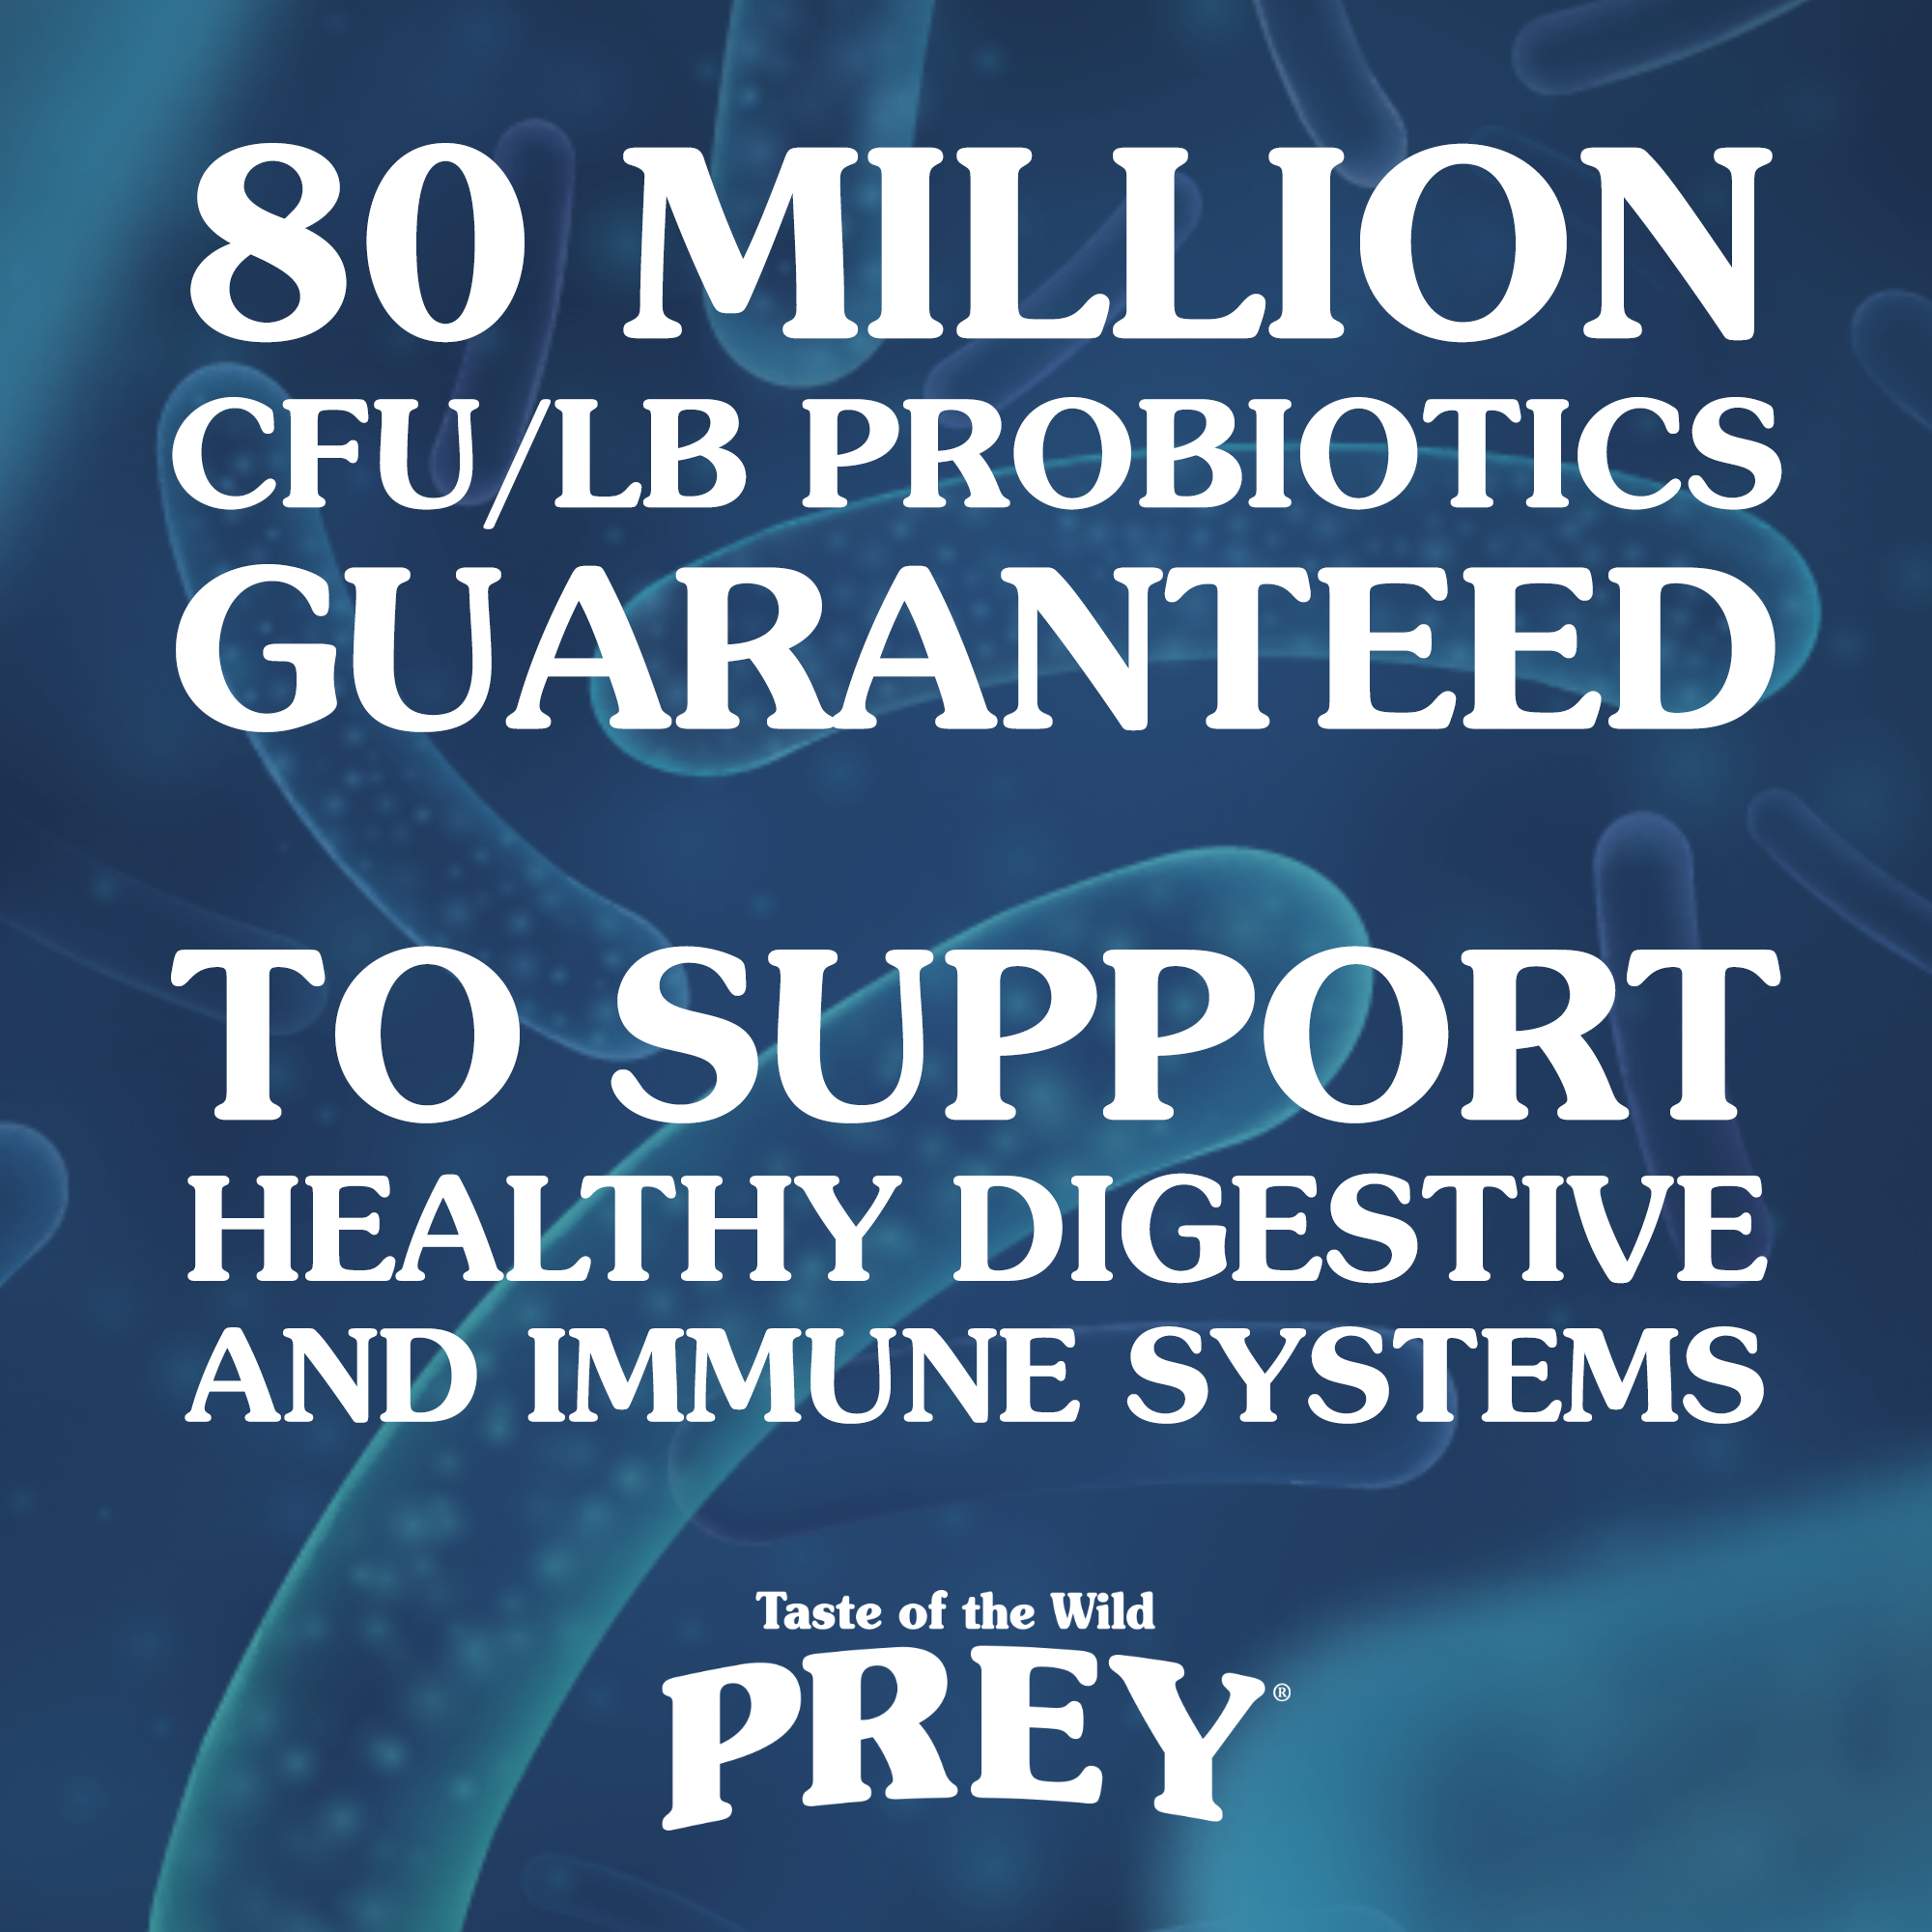 80 Million CFU/LB Probiotics Guaranteed. To support healthy digestive and immune systems.